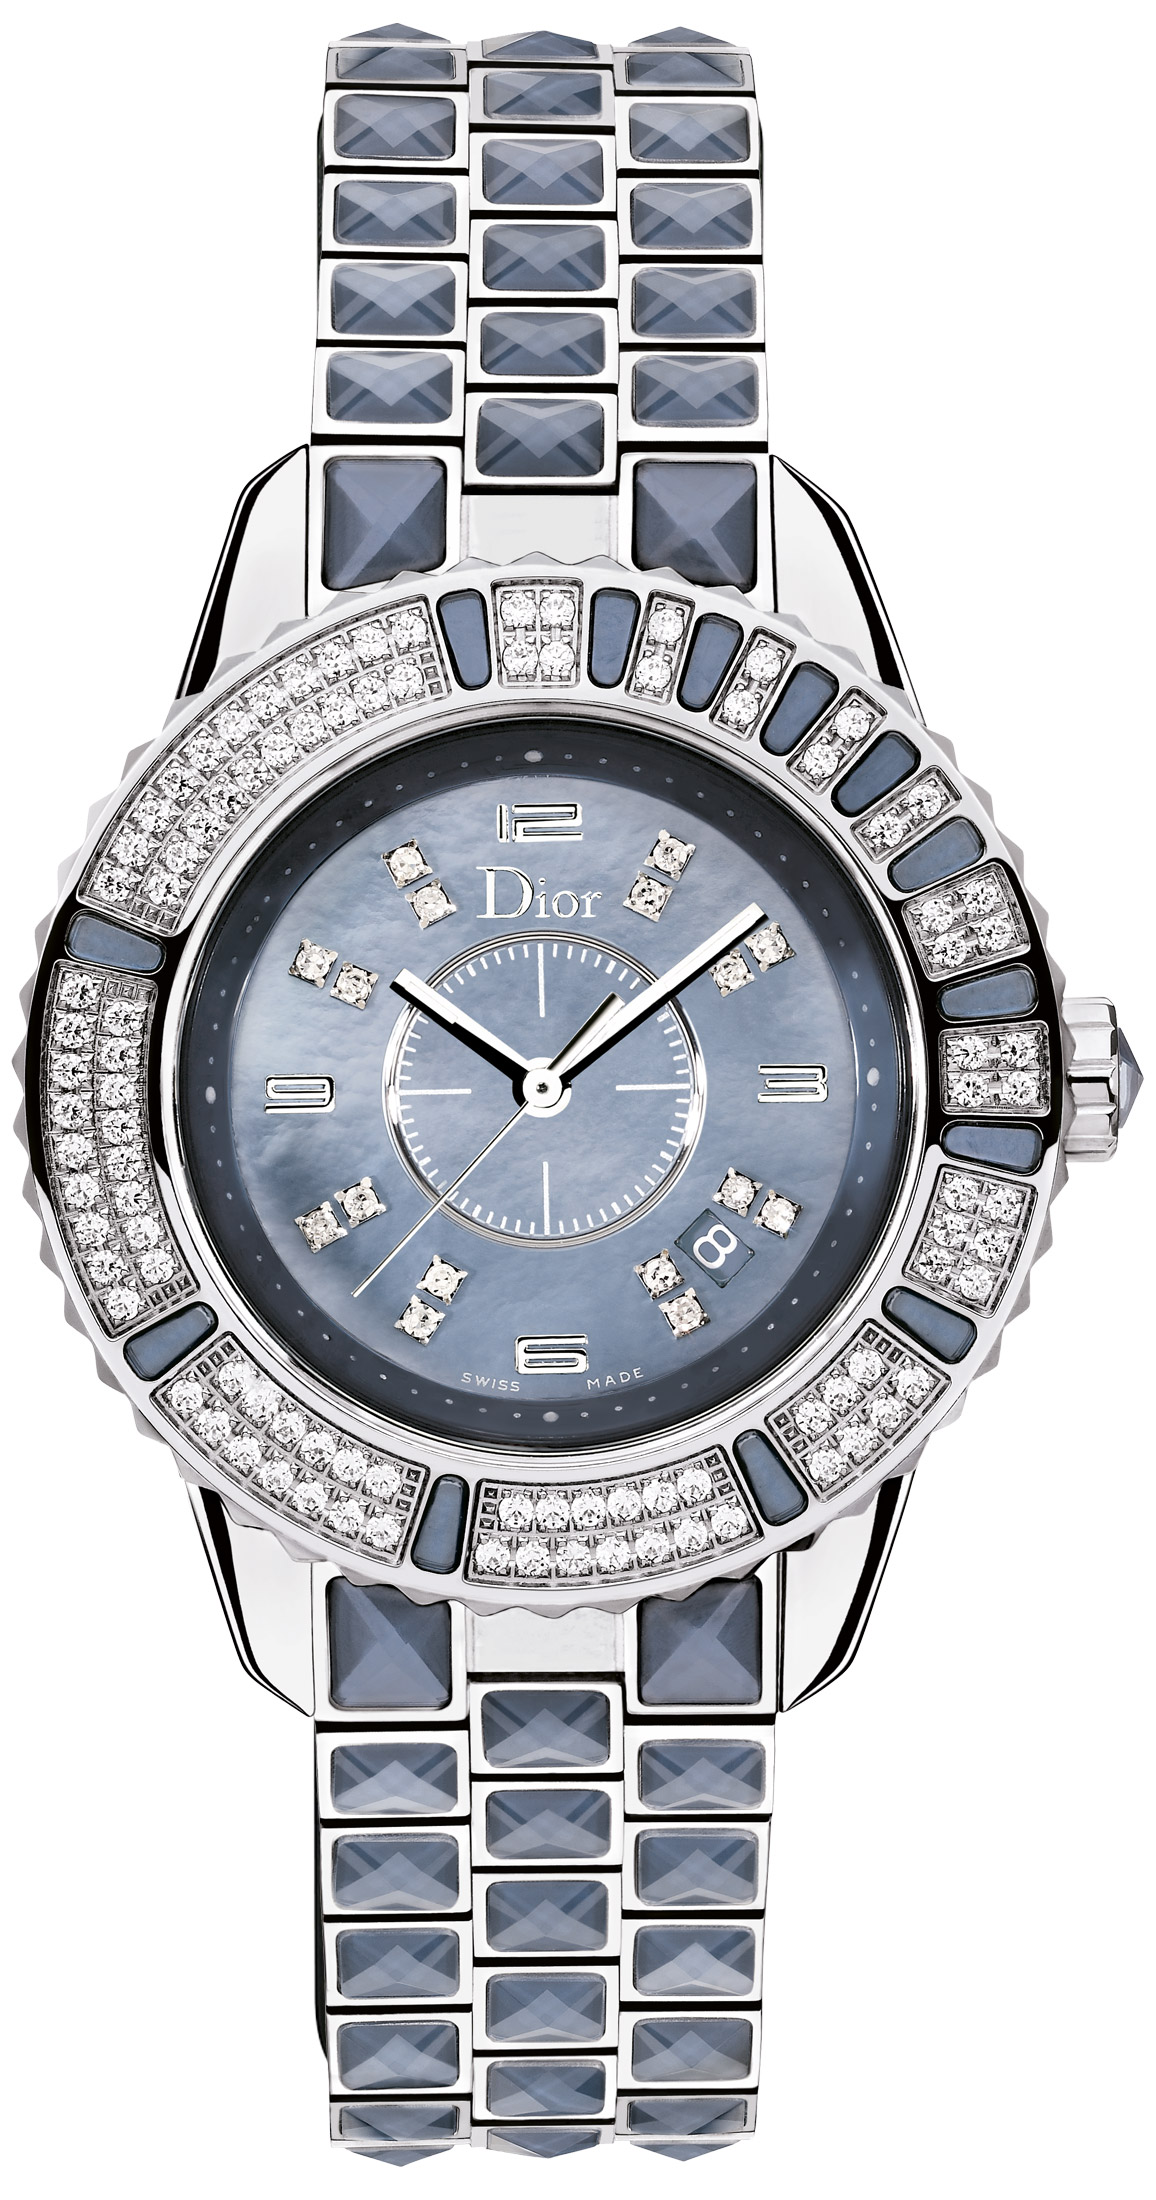 Christian dior christal ladies watch model cd11311gm001 for Christian dior watches